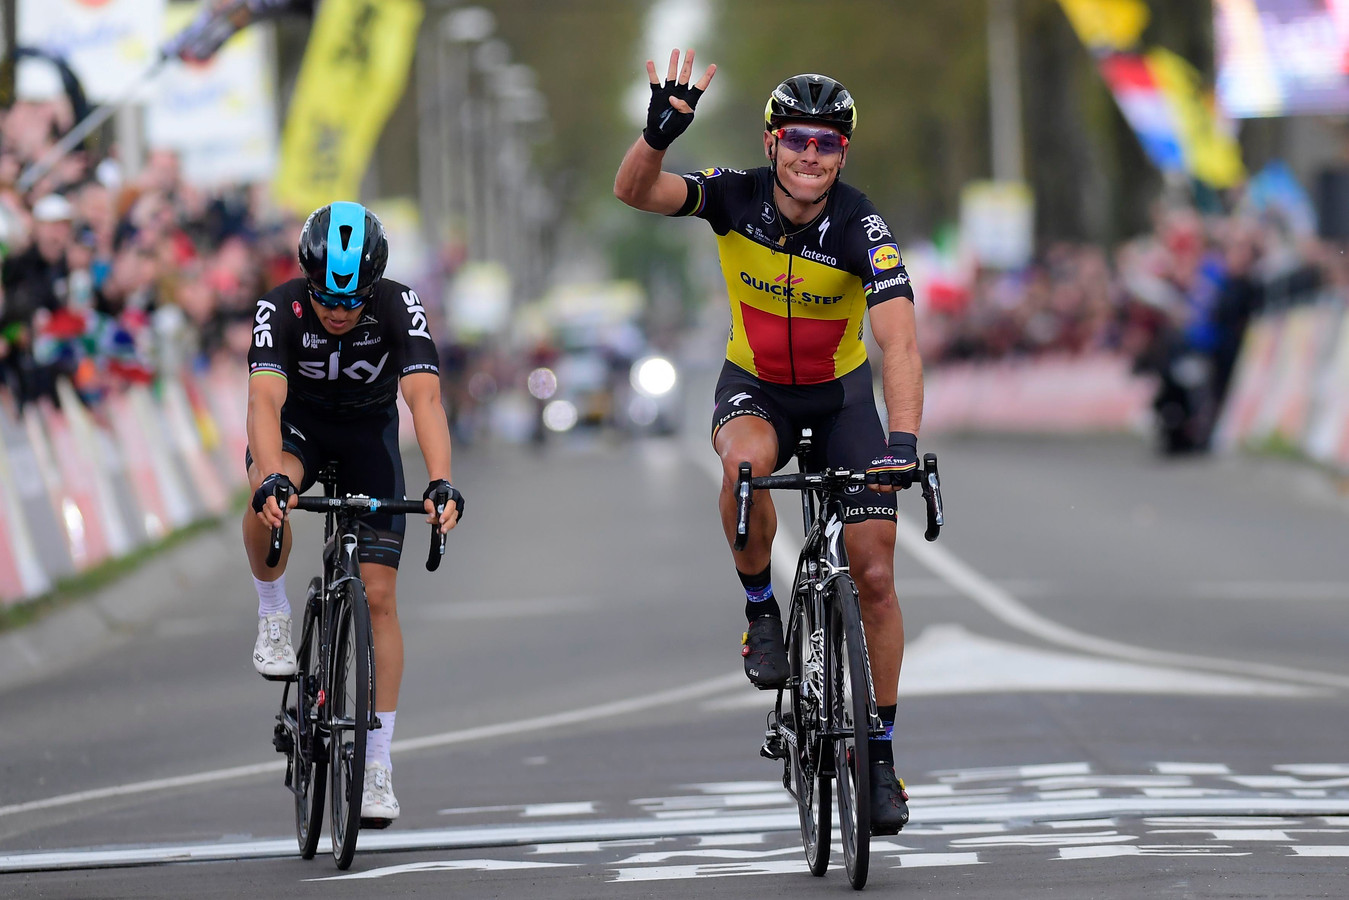 Gilbert won in 2017 de Amstel Gold Race